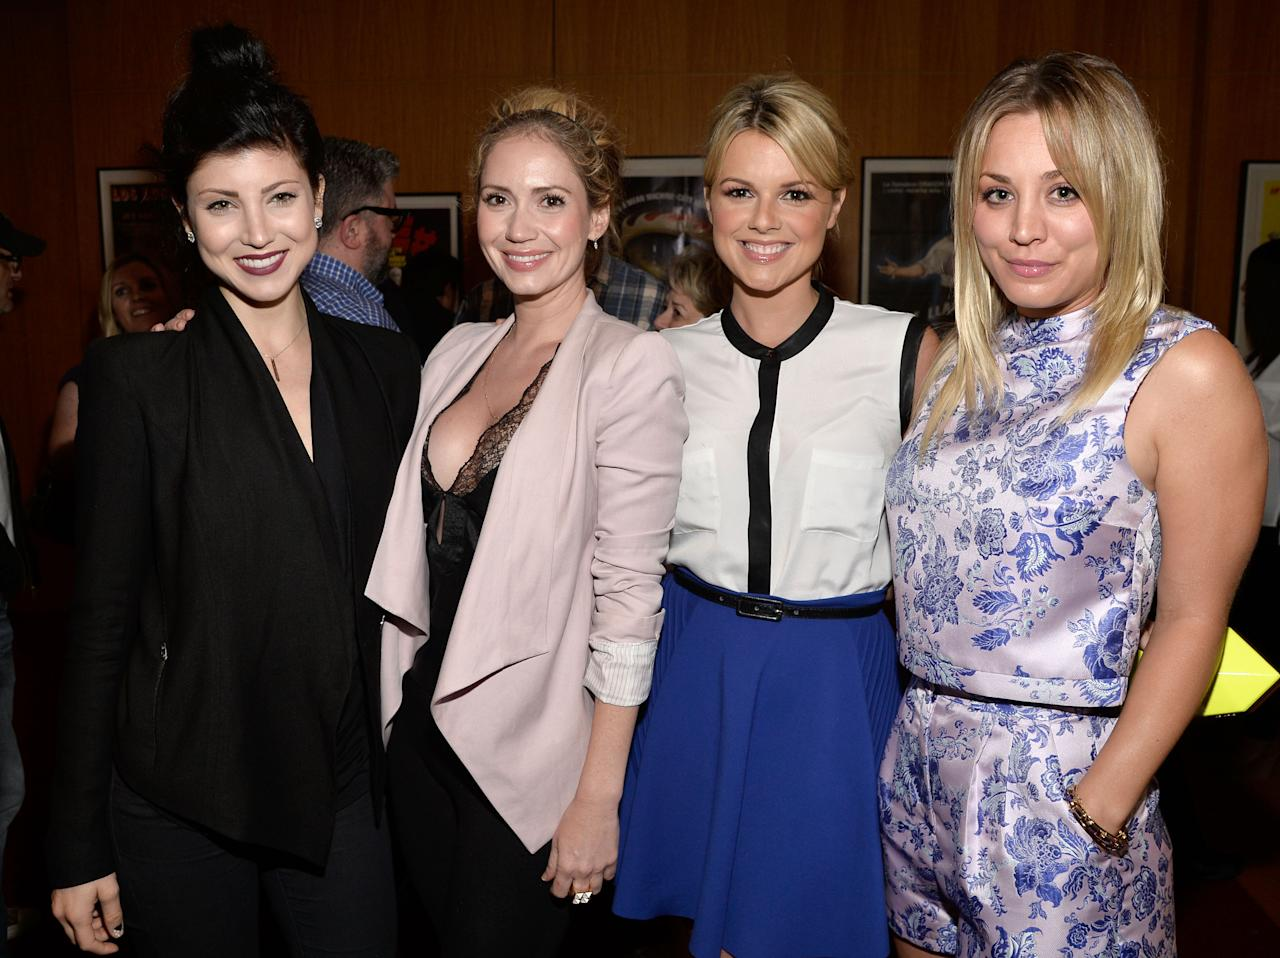 "BEVERLY HILLS, CA - JULY 24:  (L-R) Actresses Briana Cuoco, Ashley Jones, Ali Fedotowsky and Kaley Cuoco attend the after party for the premiere of ""Blue Jasmine"" hosted by AFI & Sony Picture Classics at AMPAS Samuel Goldwyn Theater on July 24, 2013 in Beverly Hills, California.  (Photo by Frazer Harrison/Getty Images for AFI)"